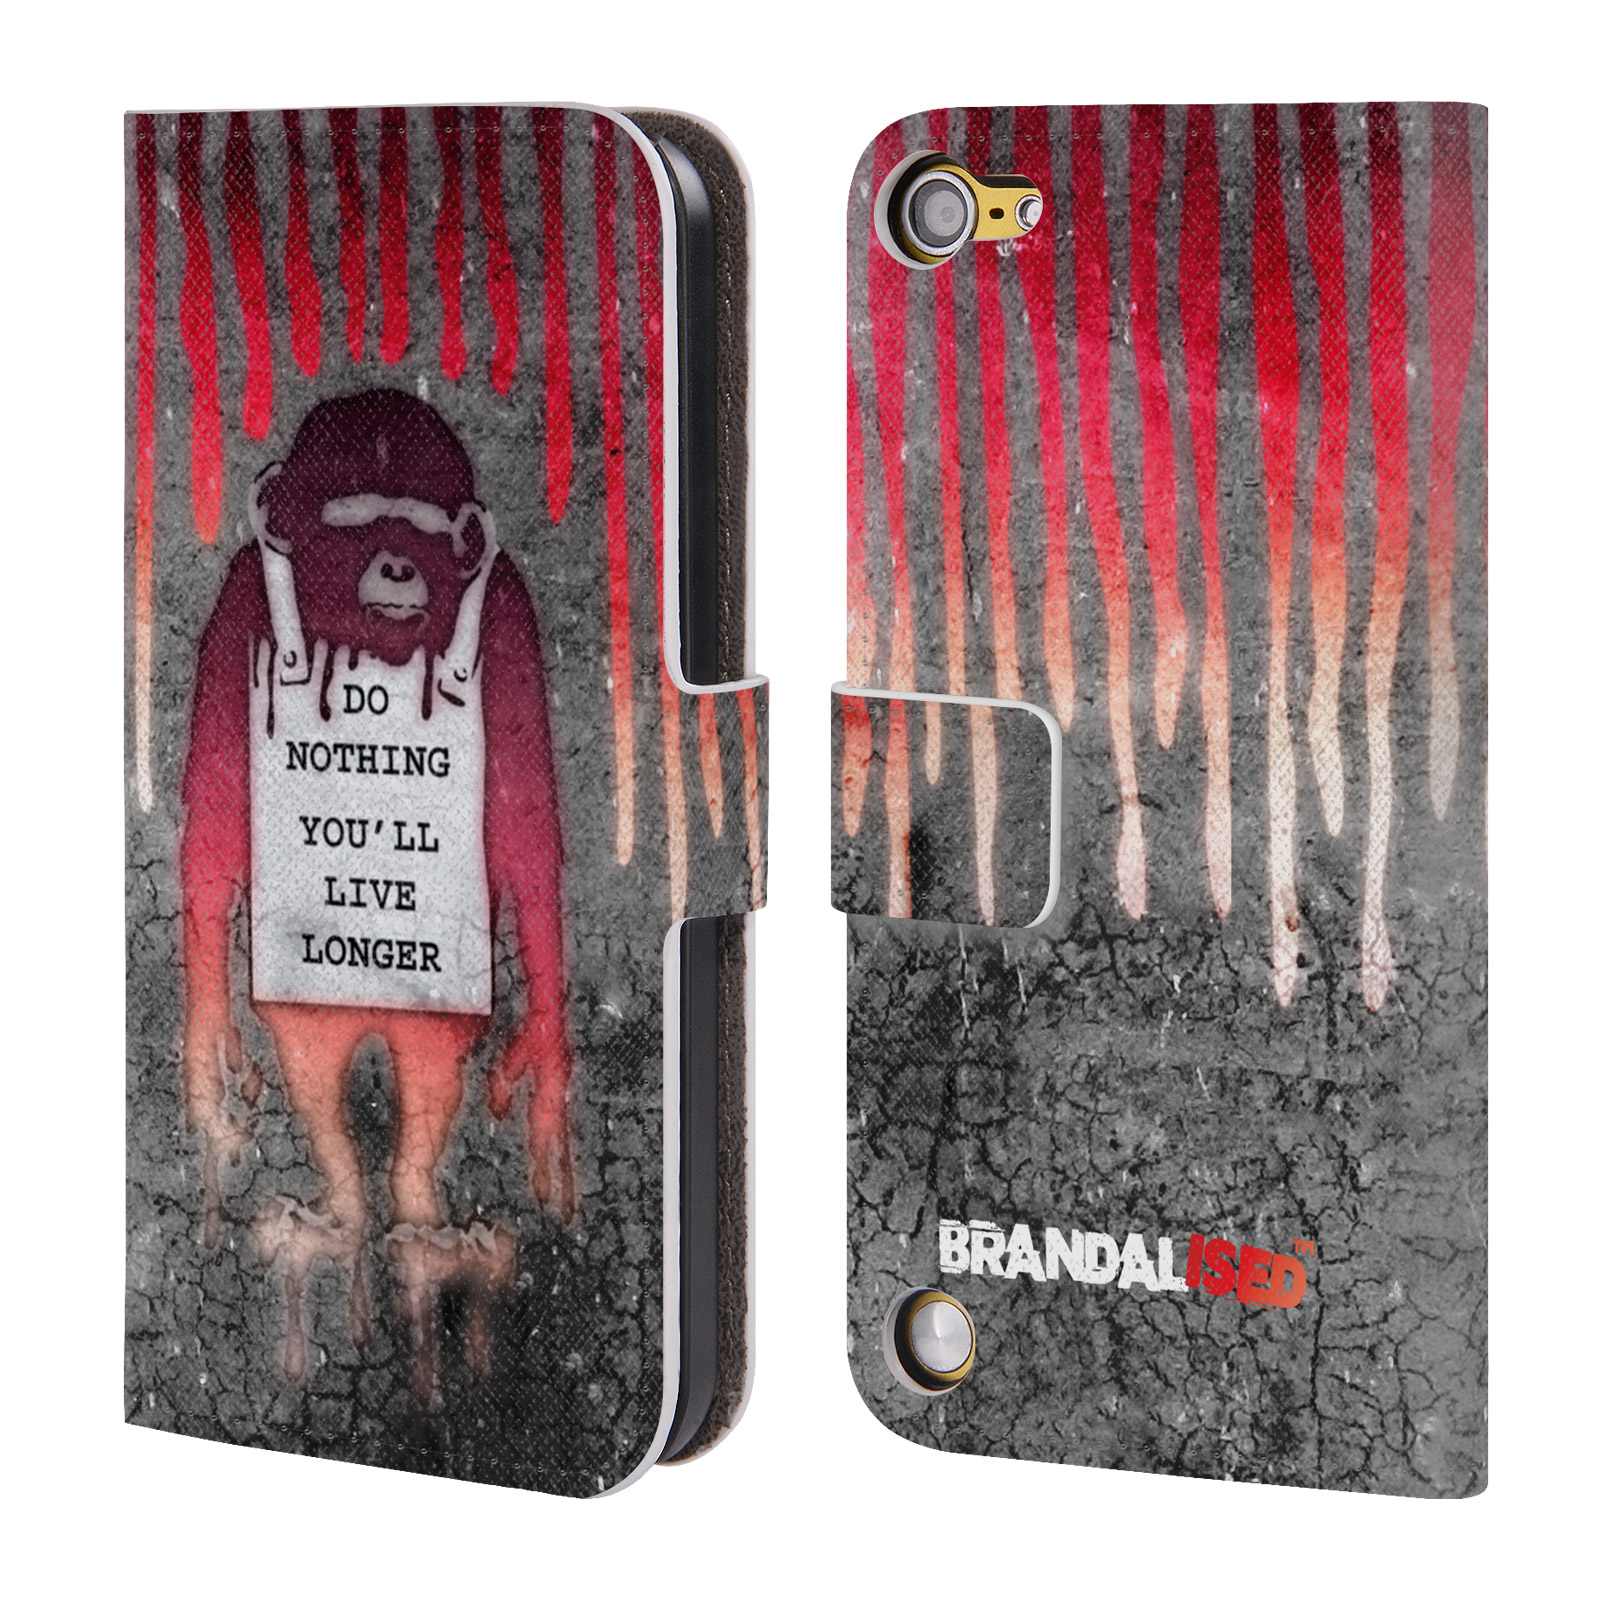 OFFICIAL BRANDALISED BANKSY ART COLOURED DRIPS LEATHER BOOK WALLET CASE COVER FOR APPLE IPOD TOUCH MP3